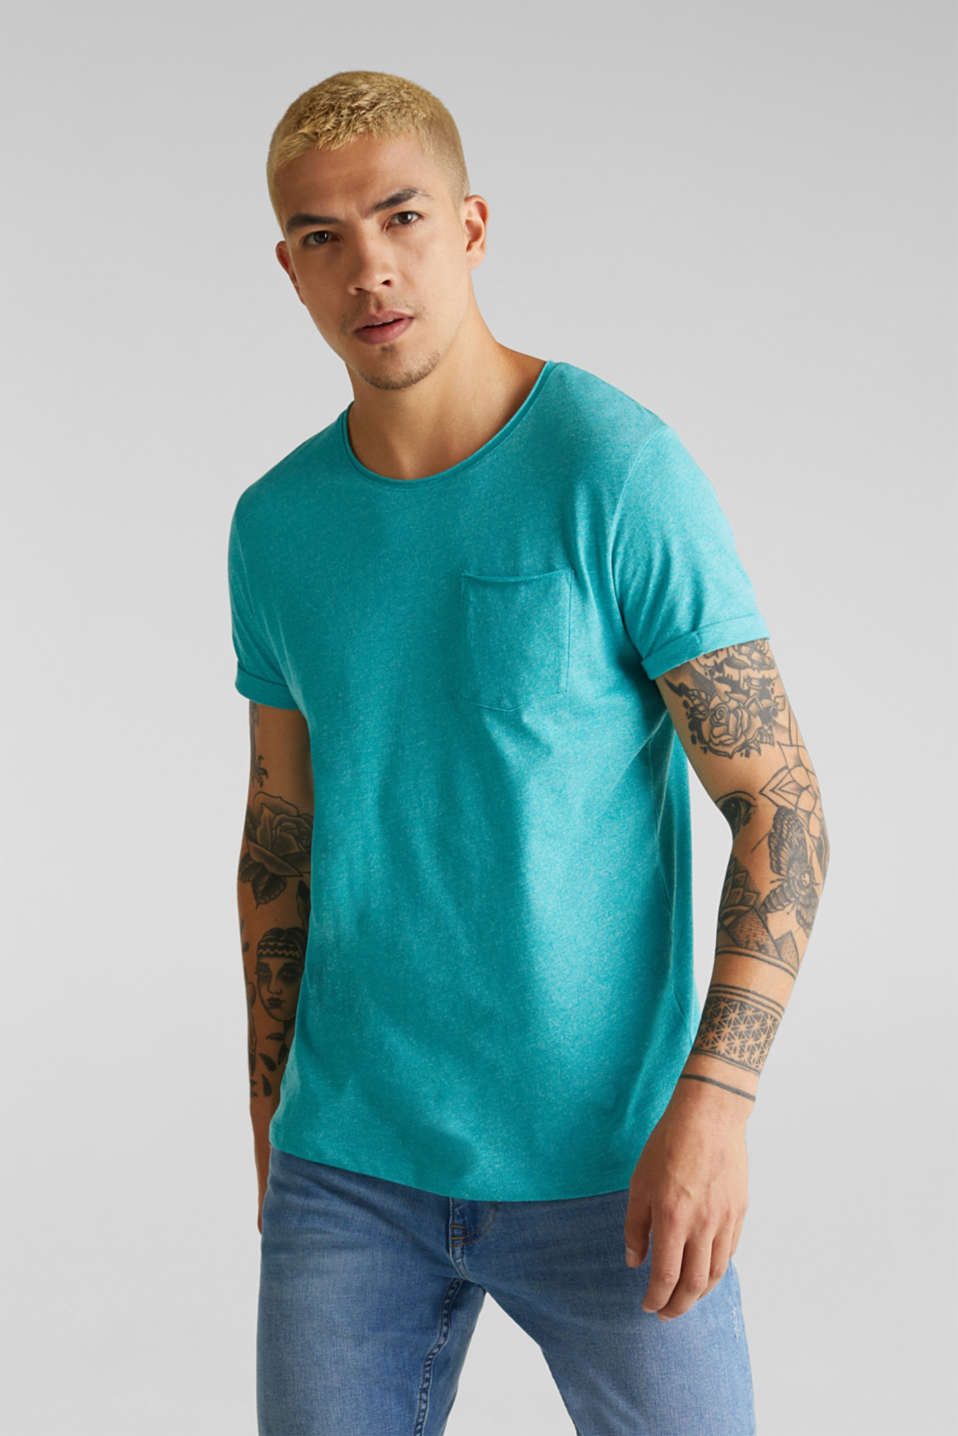 Jersey T-shirt in a casual look, LIGHT AQUA GREEN 5, detail image number 0